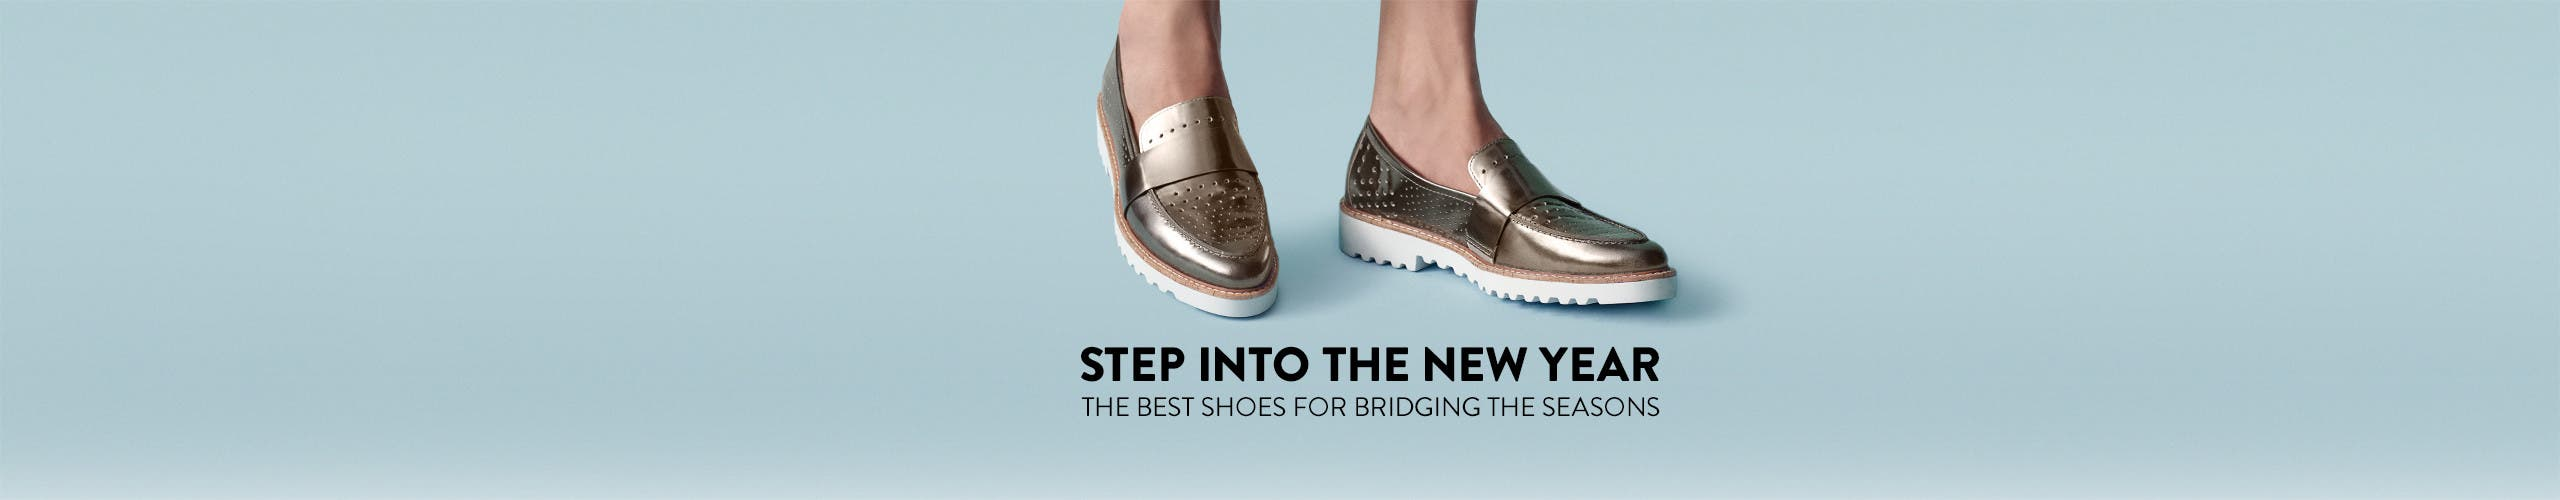 Step into the New Year. The best shoes for bridging the seasons.